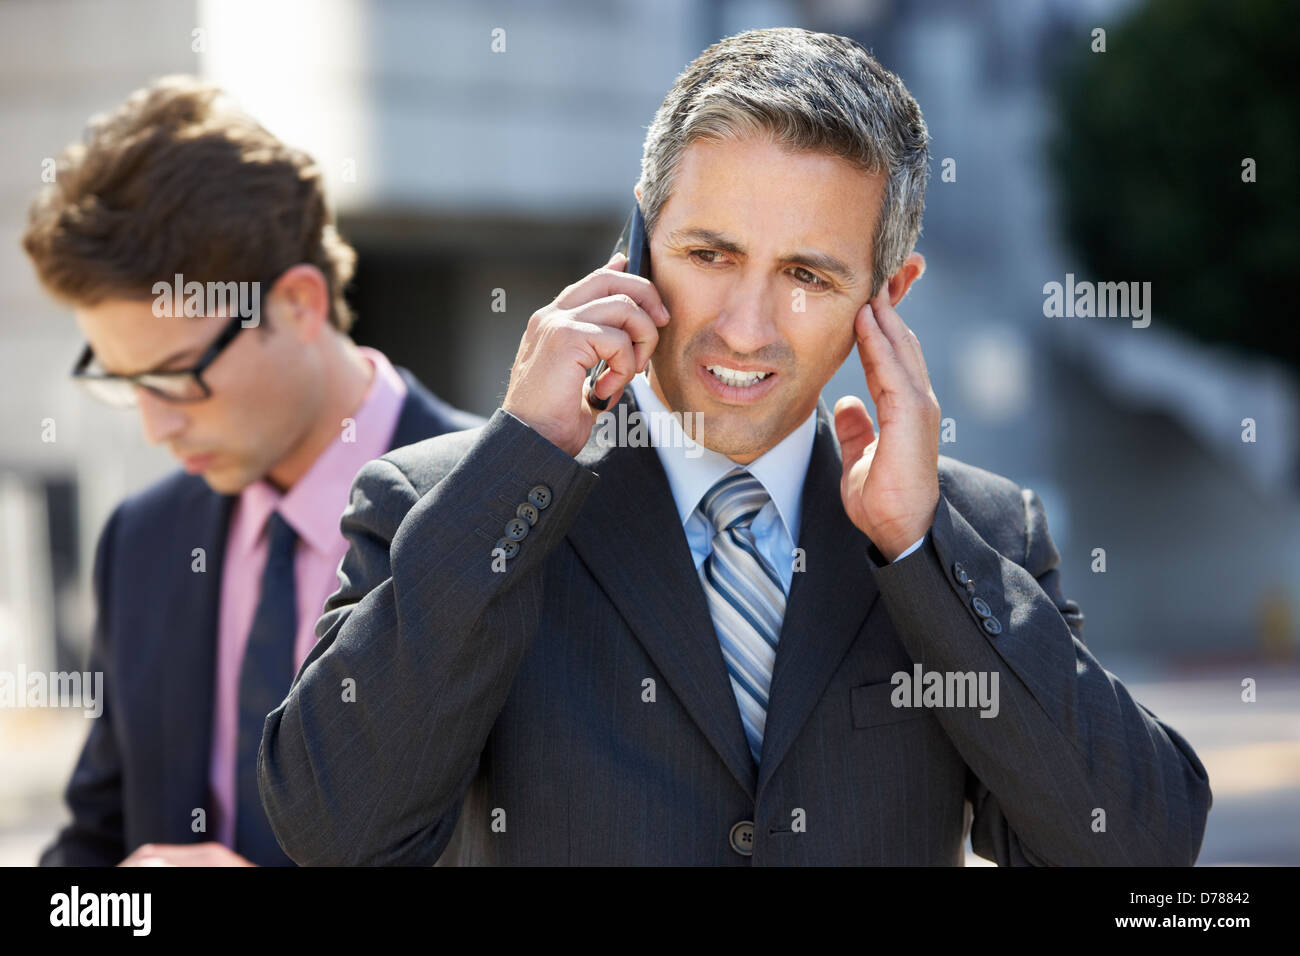 Businessman Speaking On Mobile Phone In Noisy Surroundings - Stock Image